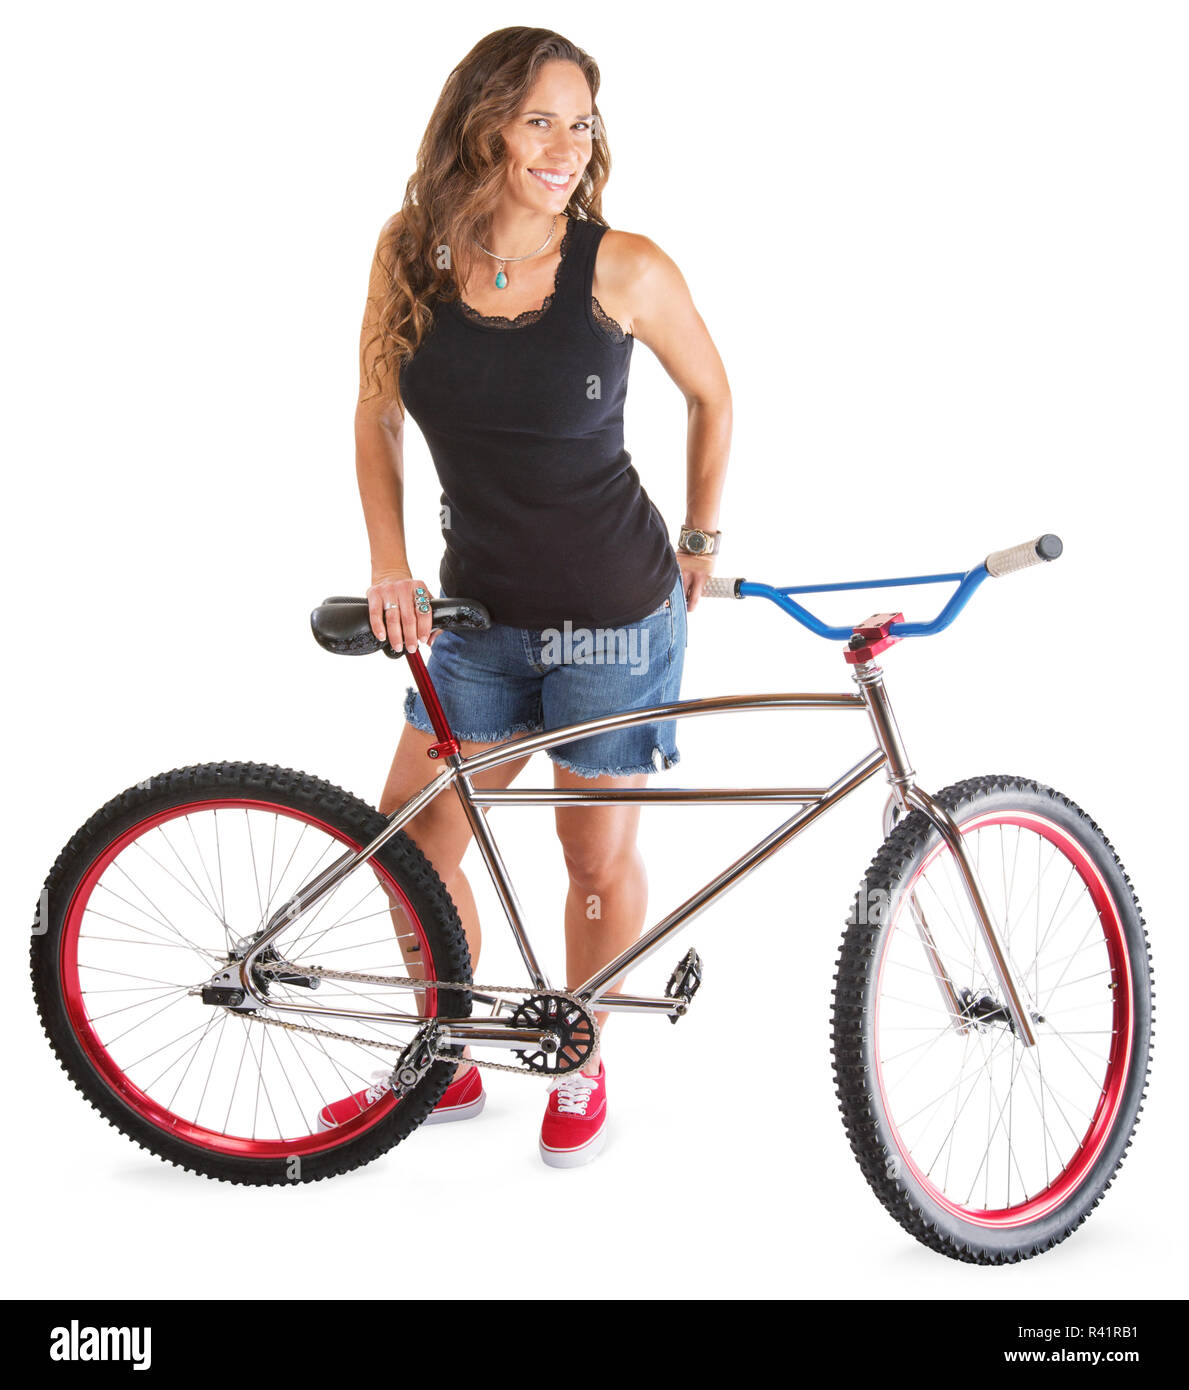 Cute Adult with Mountain Bike - Stock Image